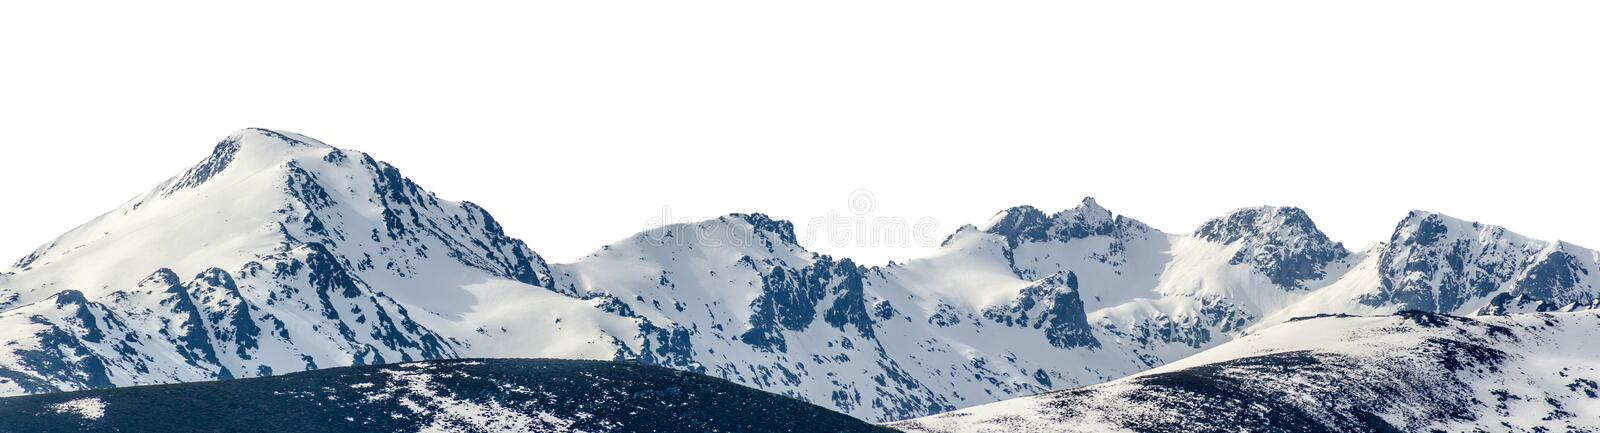 Snowy peaks in a mountain range isolated over white background stock photo